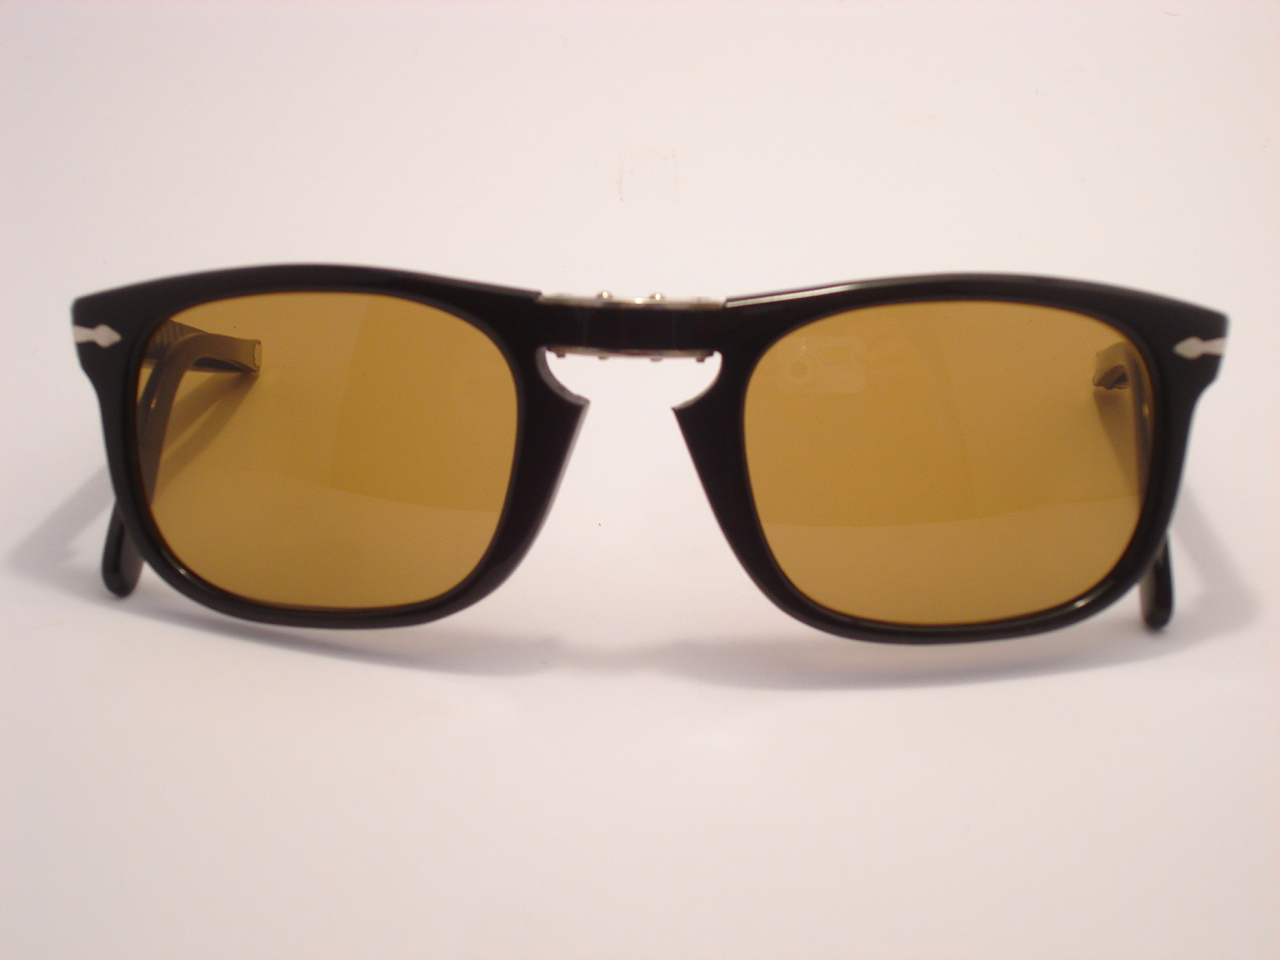 Theothersideofthepillow Vintage Persol By Ratti 804